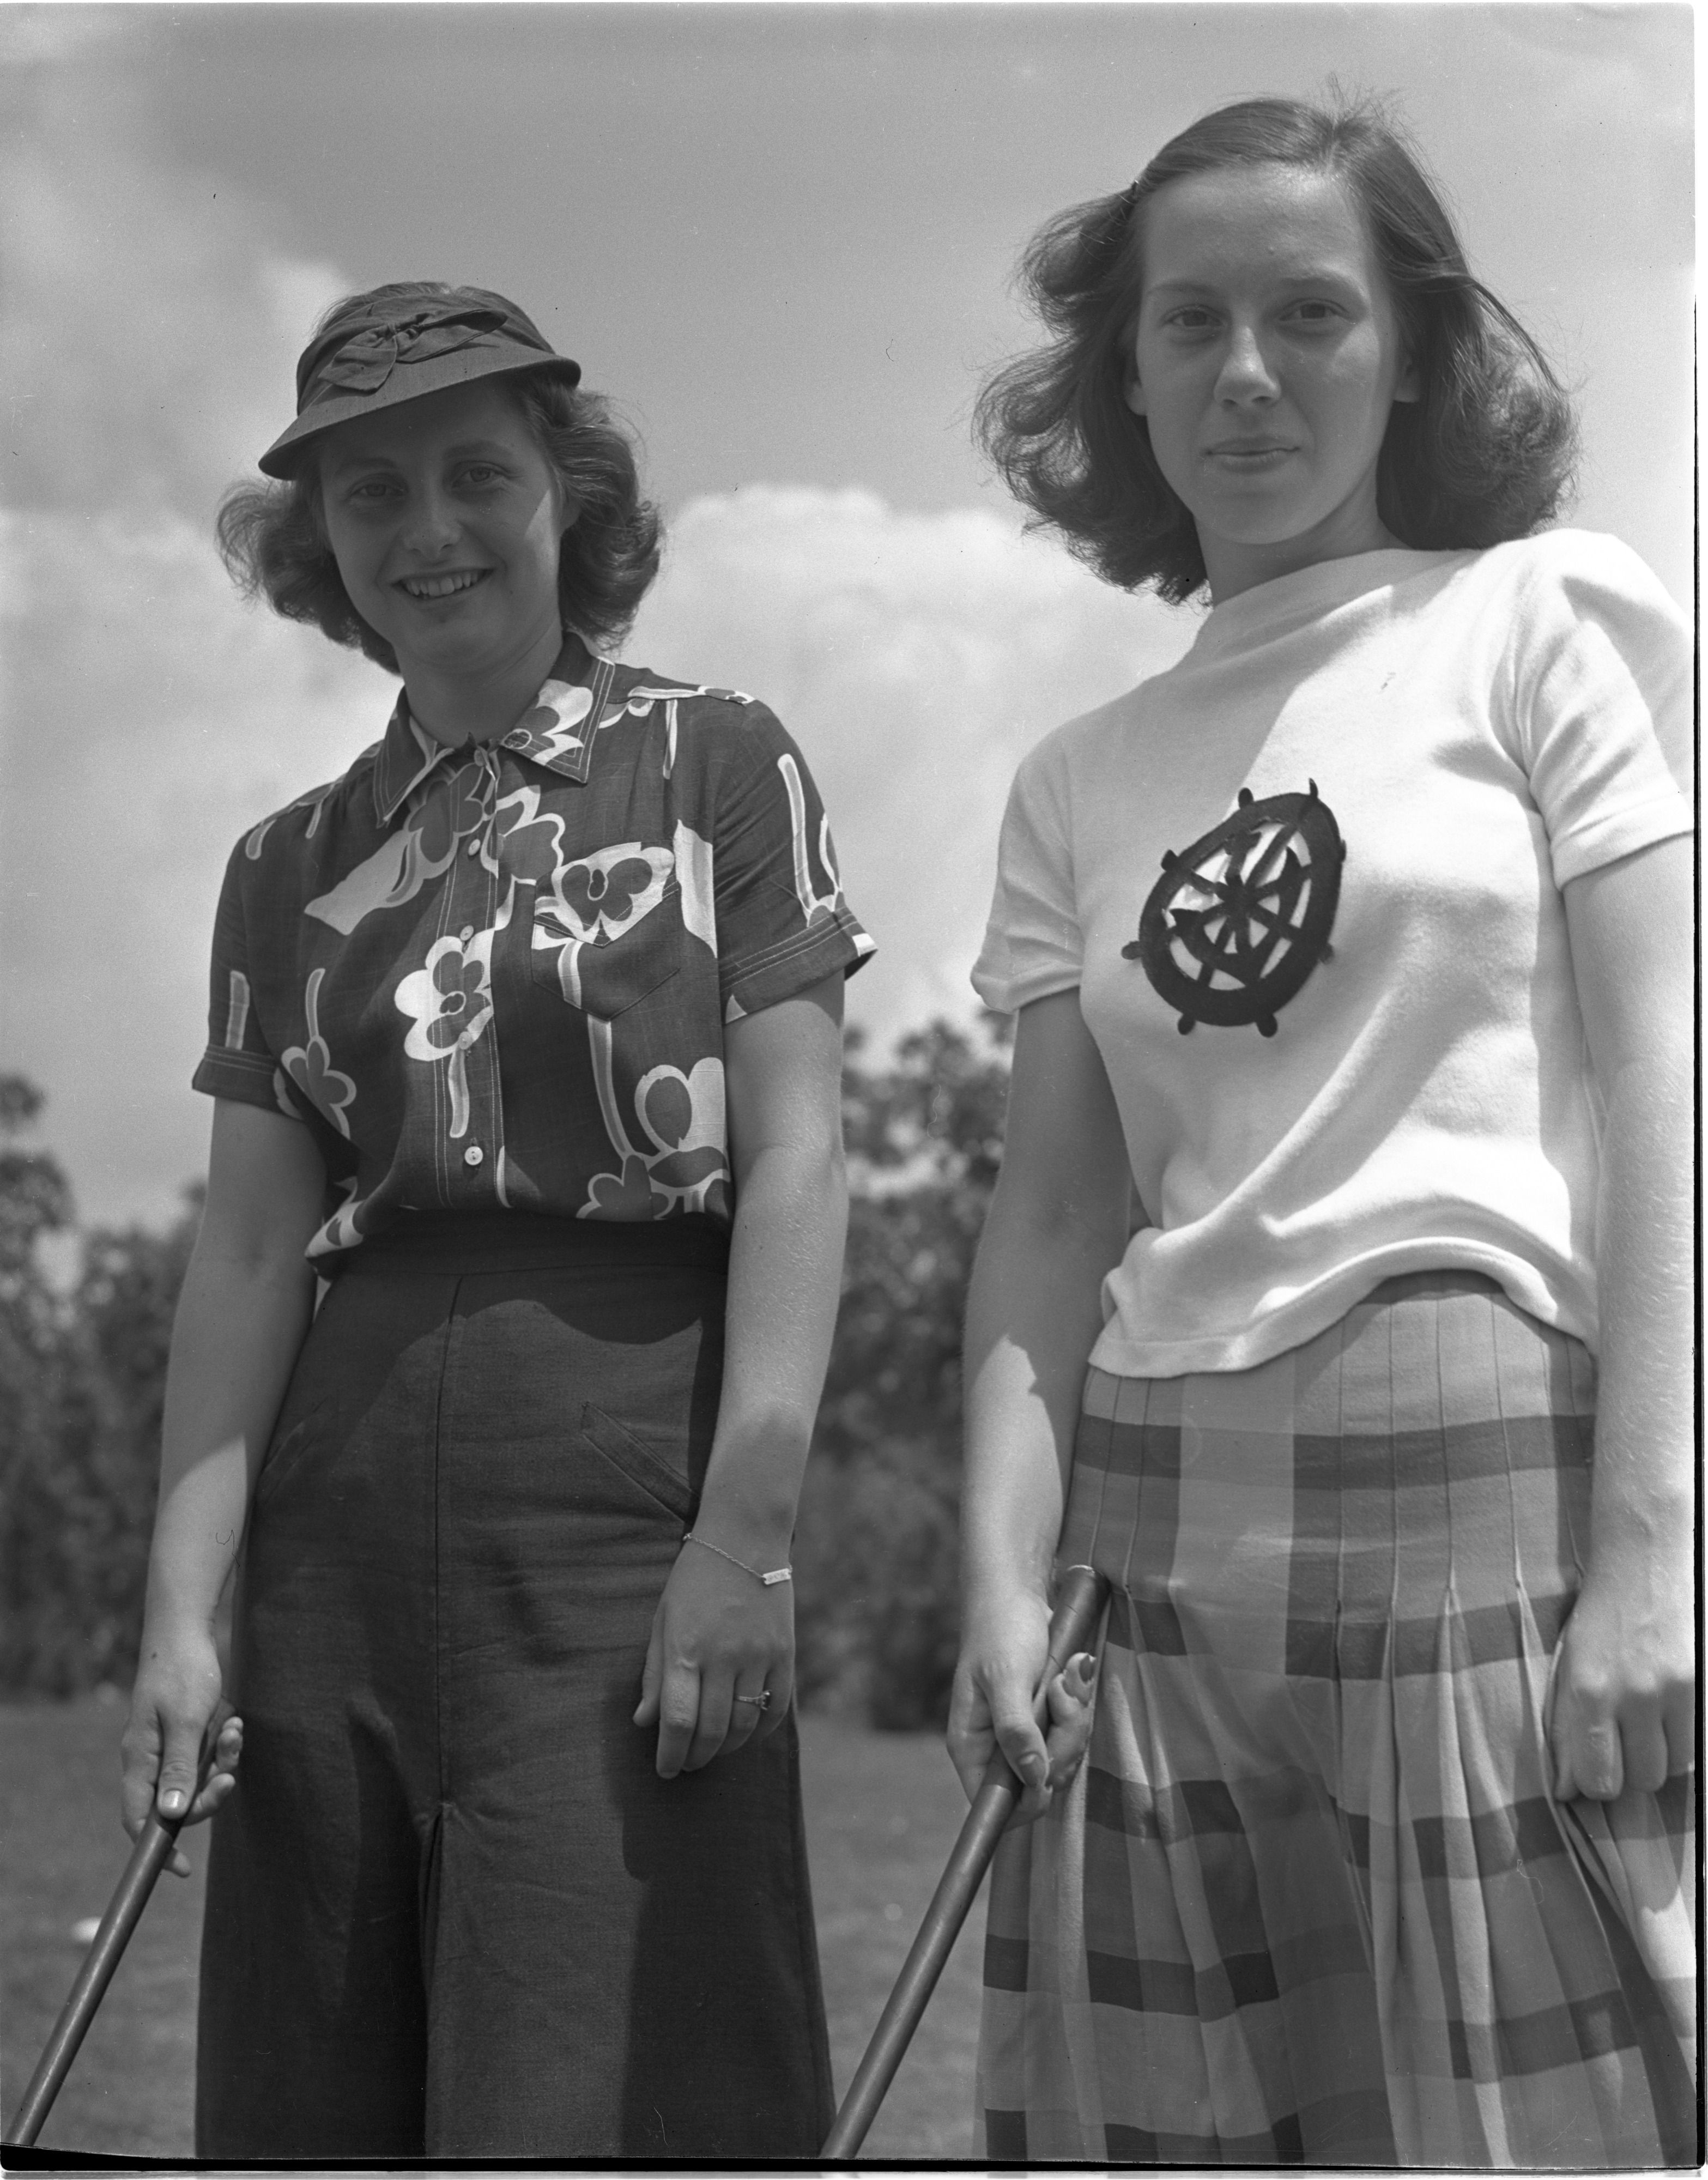 Patty Hadley & Peggy Whitker In The Women's City Golf Tournament Qualifying Rounds At Barton Hills, July 1939 image